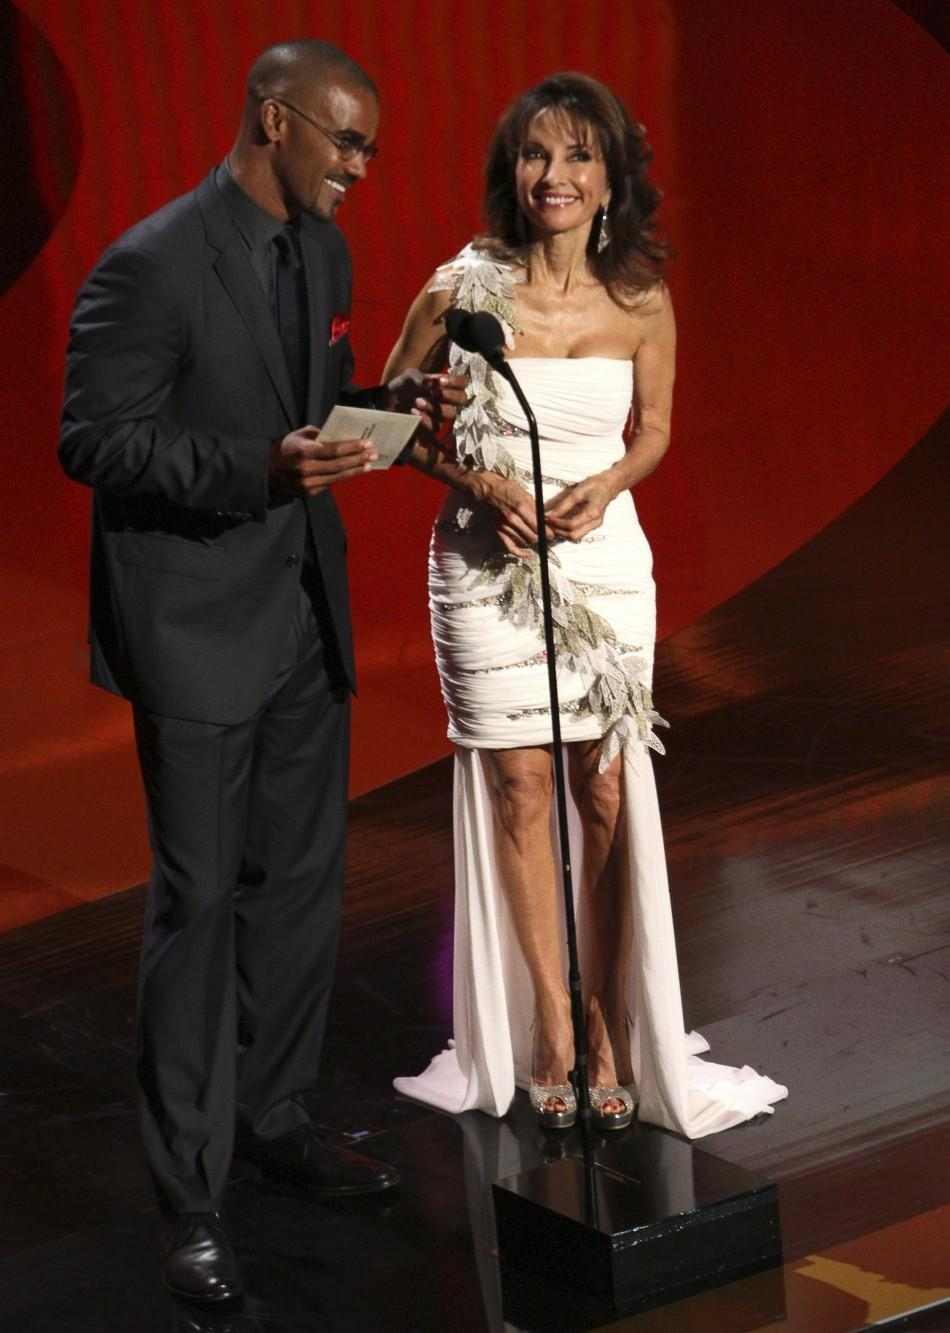 Actor Shemar Moore (L) and actress Susan Lucci speak onstage during the 38th Annual Daytime Entertainment Emmy Awards at the Las Vegas Hilton in Las Vegas, Nevada, June 19, 2011.